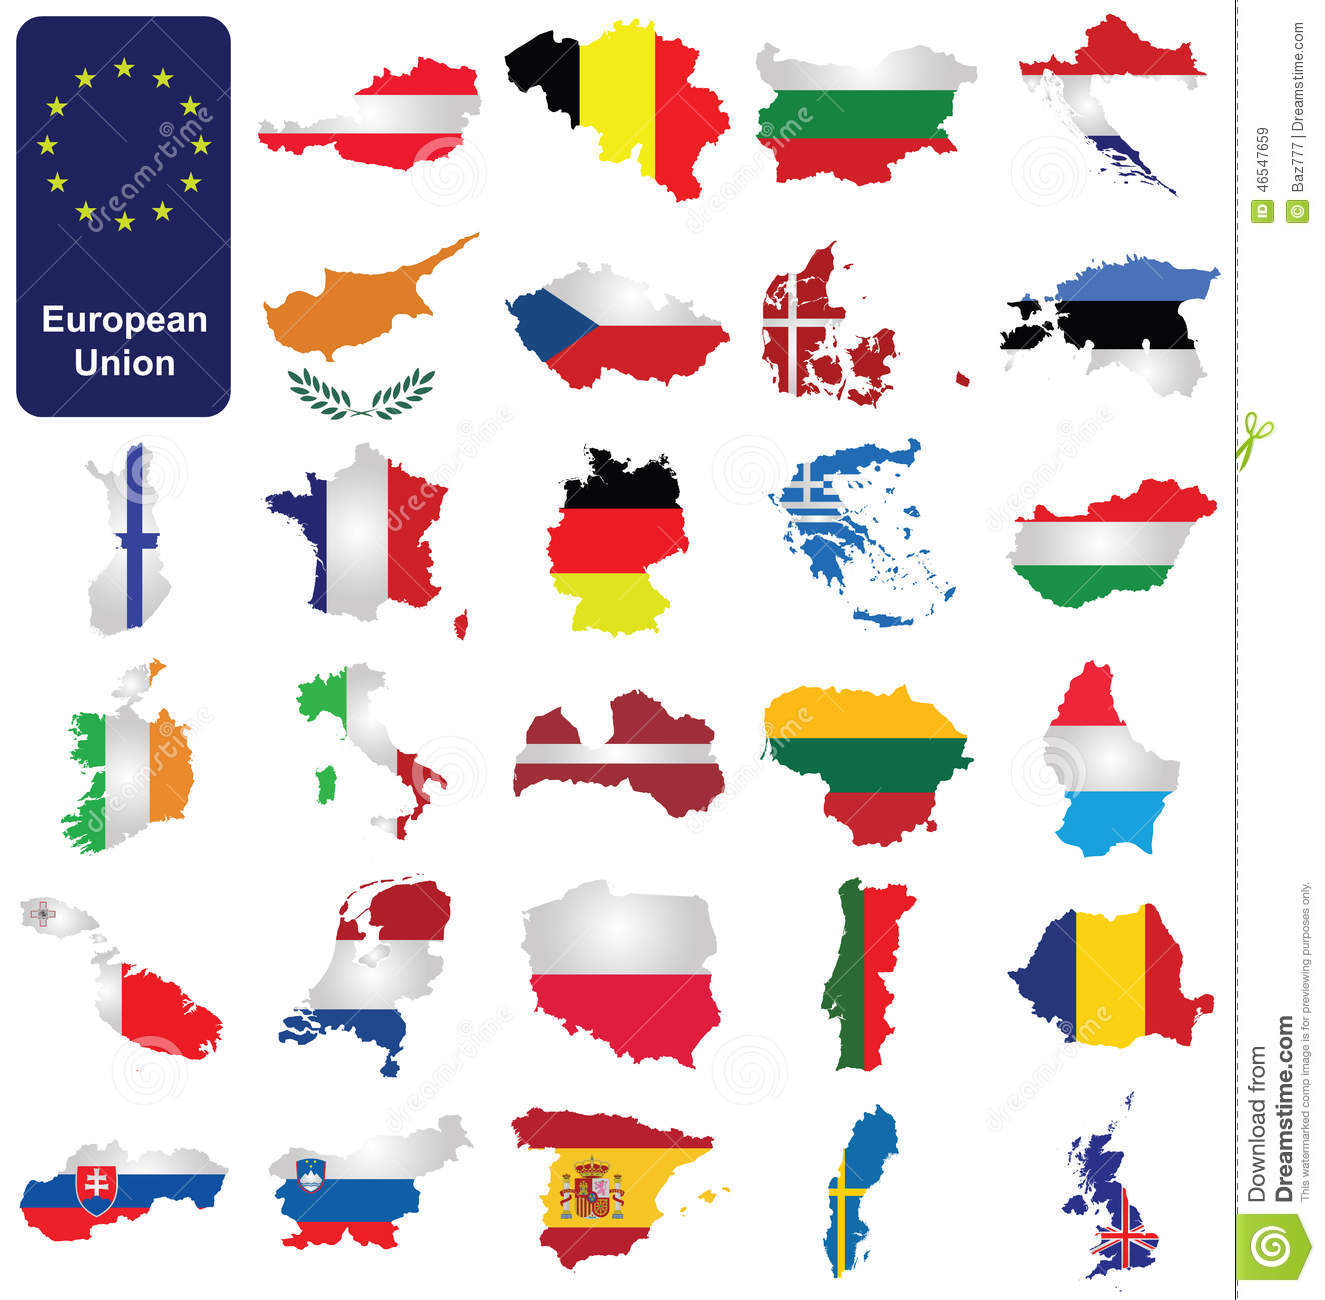 European Union Countries Stock Vector Illustration Of Background